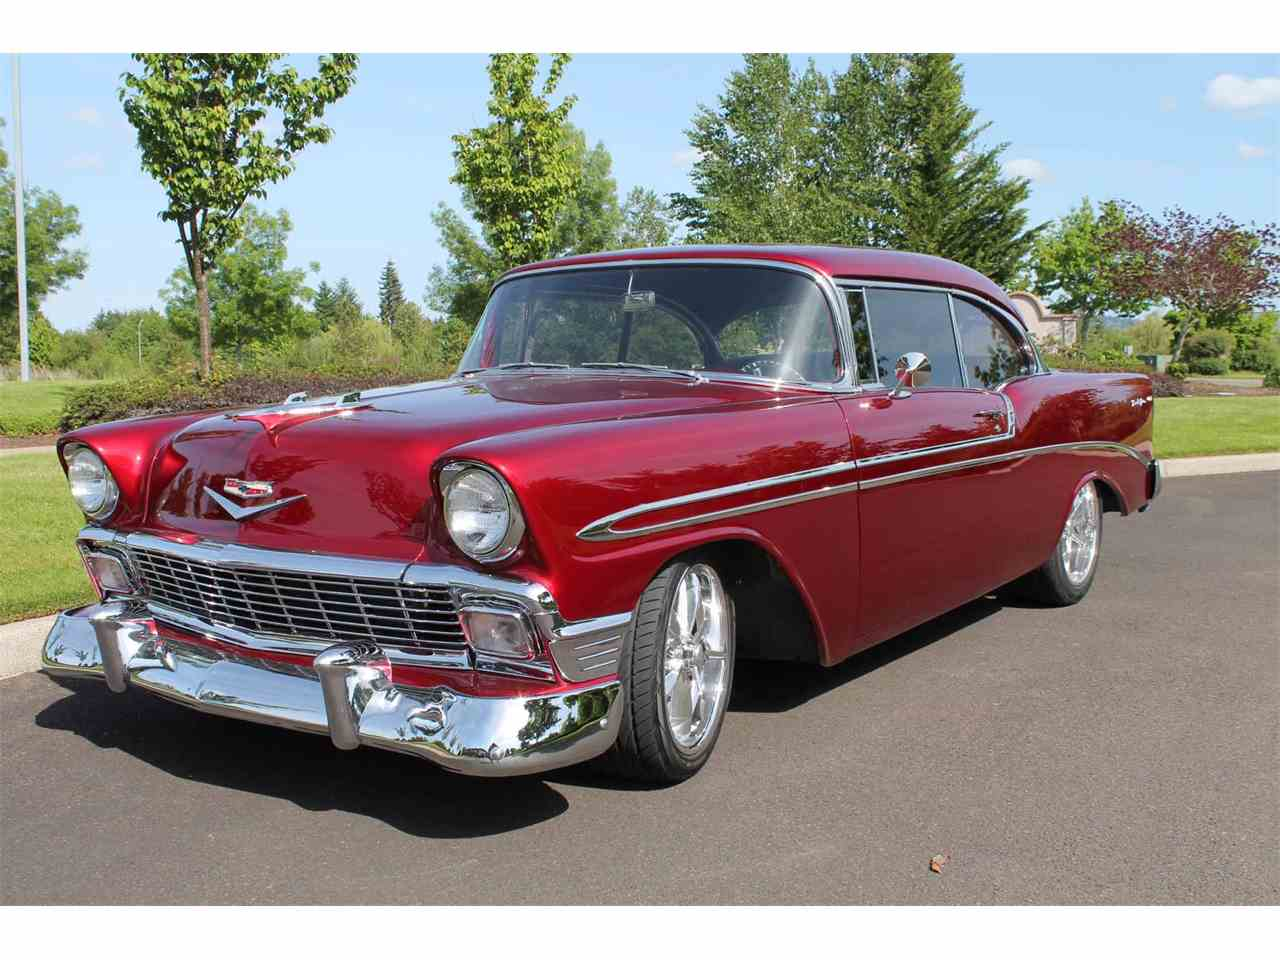 1956 chevrolet bel air for sale classic car liquidators - 1956 Chevrolet Bel Air For Sale Cc 939682